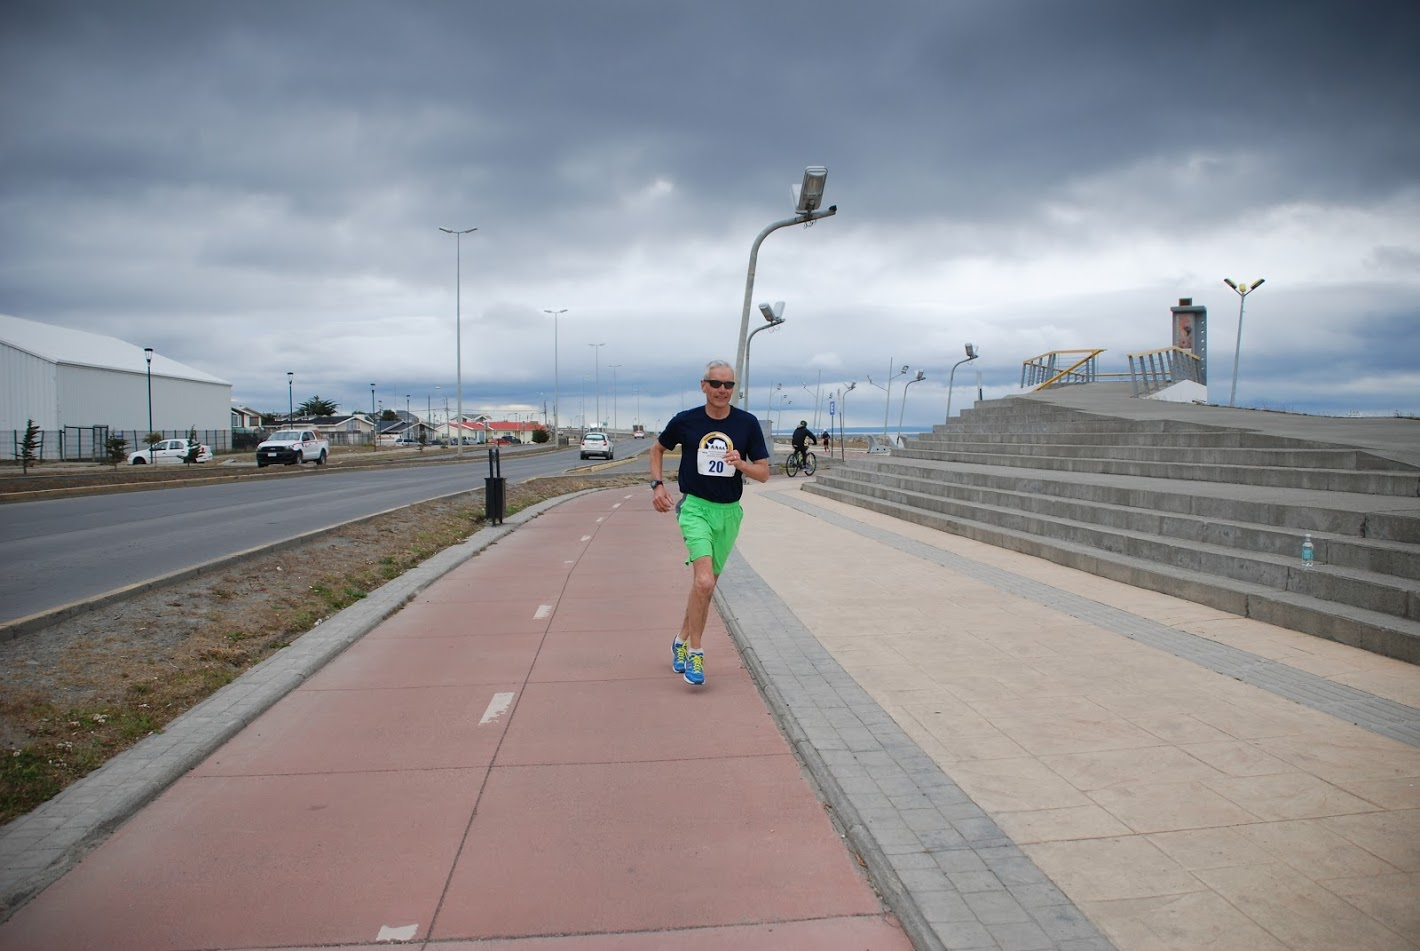 David Anderson mid race of the Punta Arenas Marathon in Chile